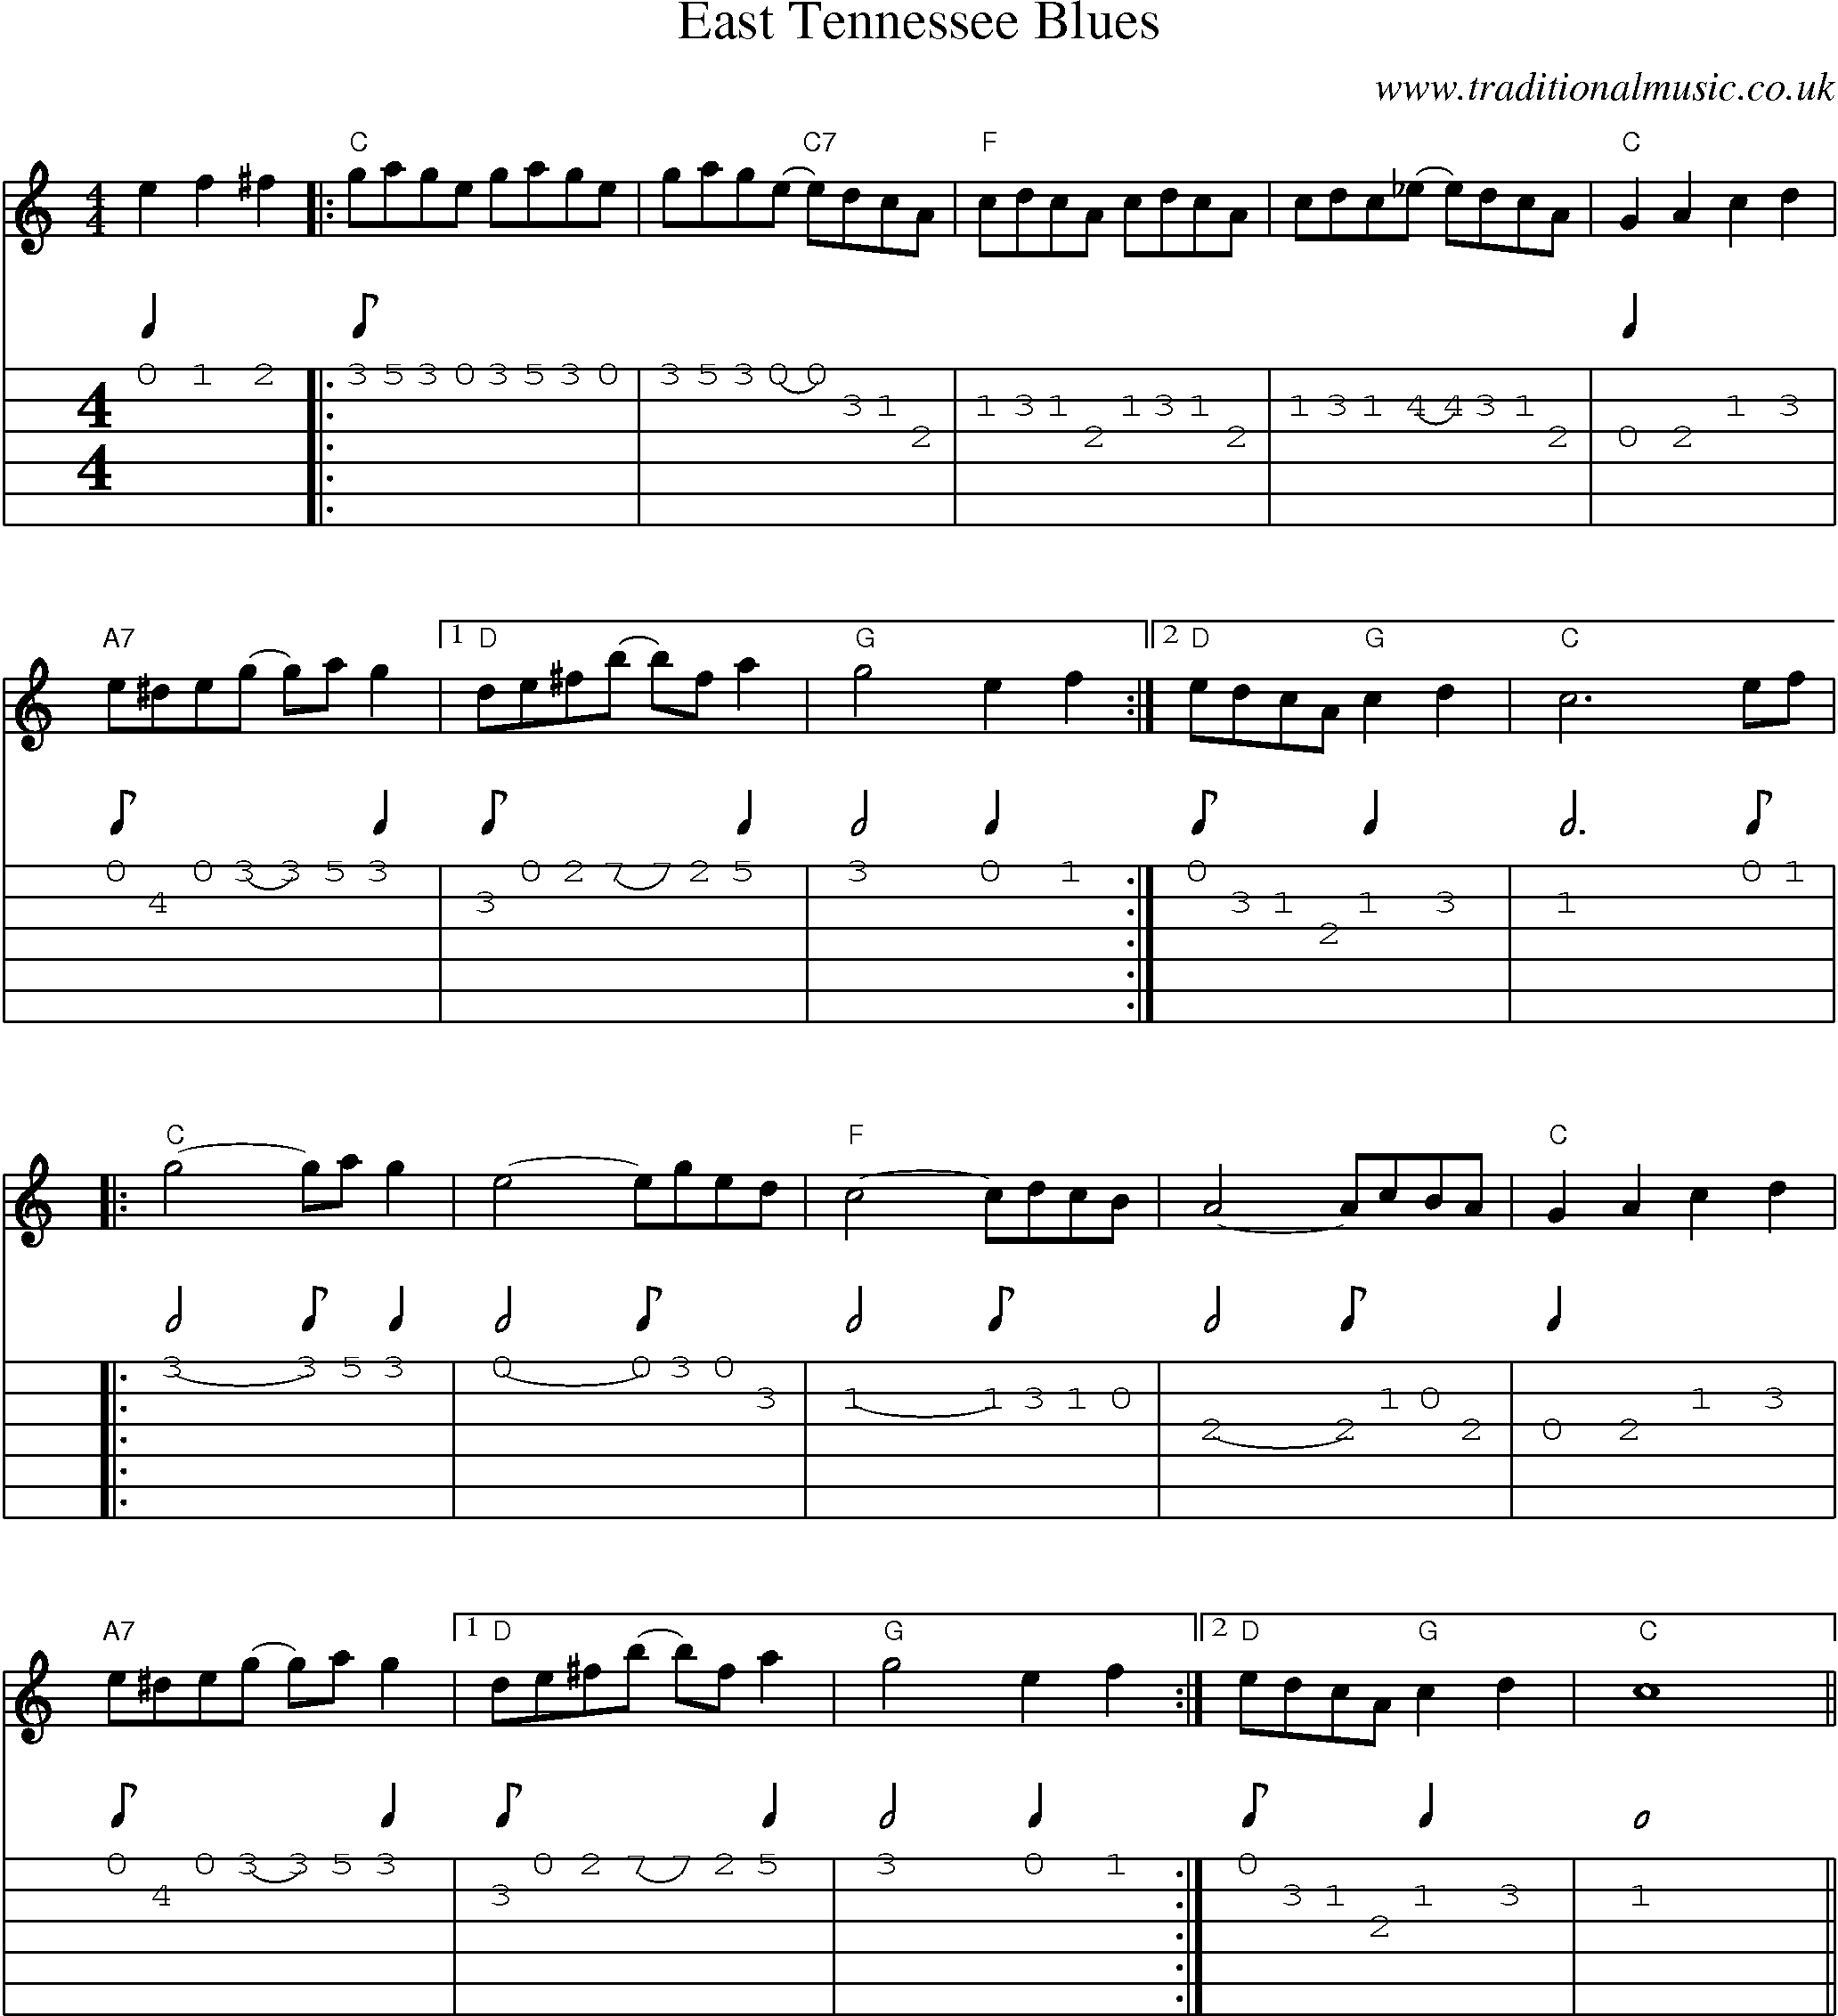 Irish Music Tune: East Tennessee Blues with Guitar Tab